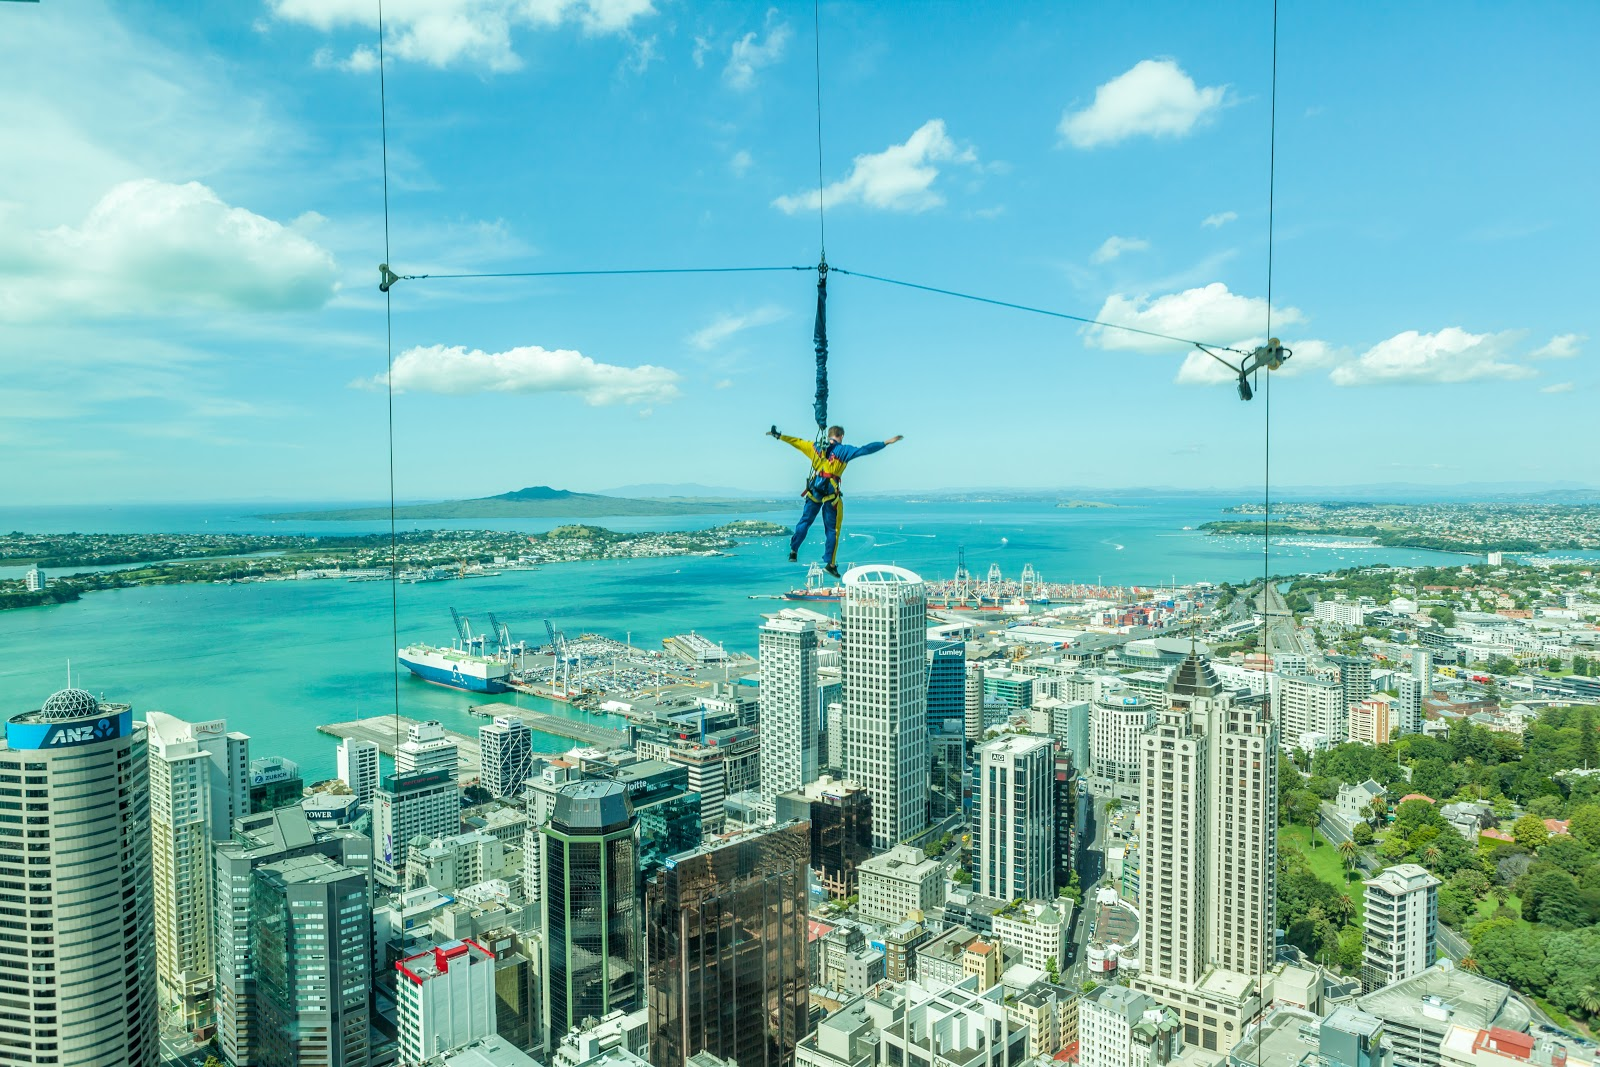 One of the many ways to view the Auckland skyline: jumping off the Skytower.